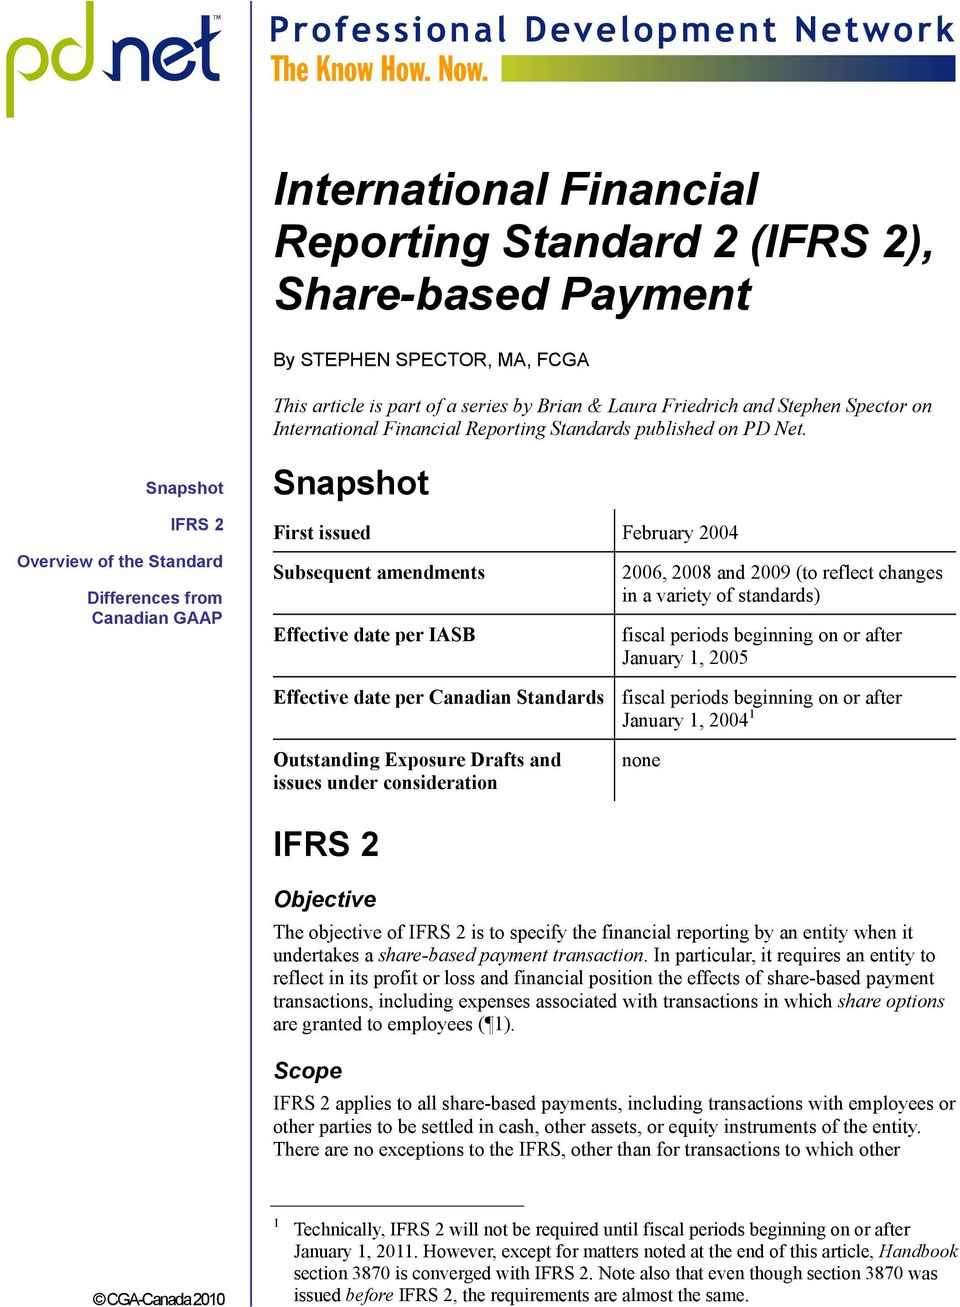 Snapshot IFRS 2 Overview of the Standard Differences from Canadian GAAP Snapshot First issued February 2004 Subsequent amendments Effective date per IASB 2006, 2008 and 2009 (to reflect changes in a